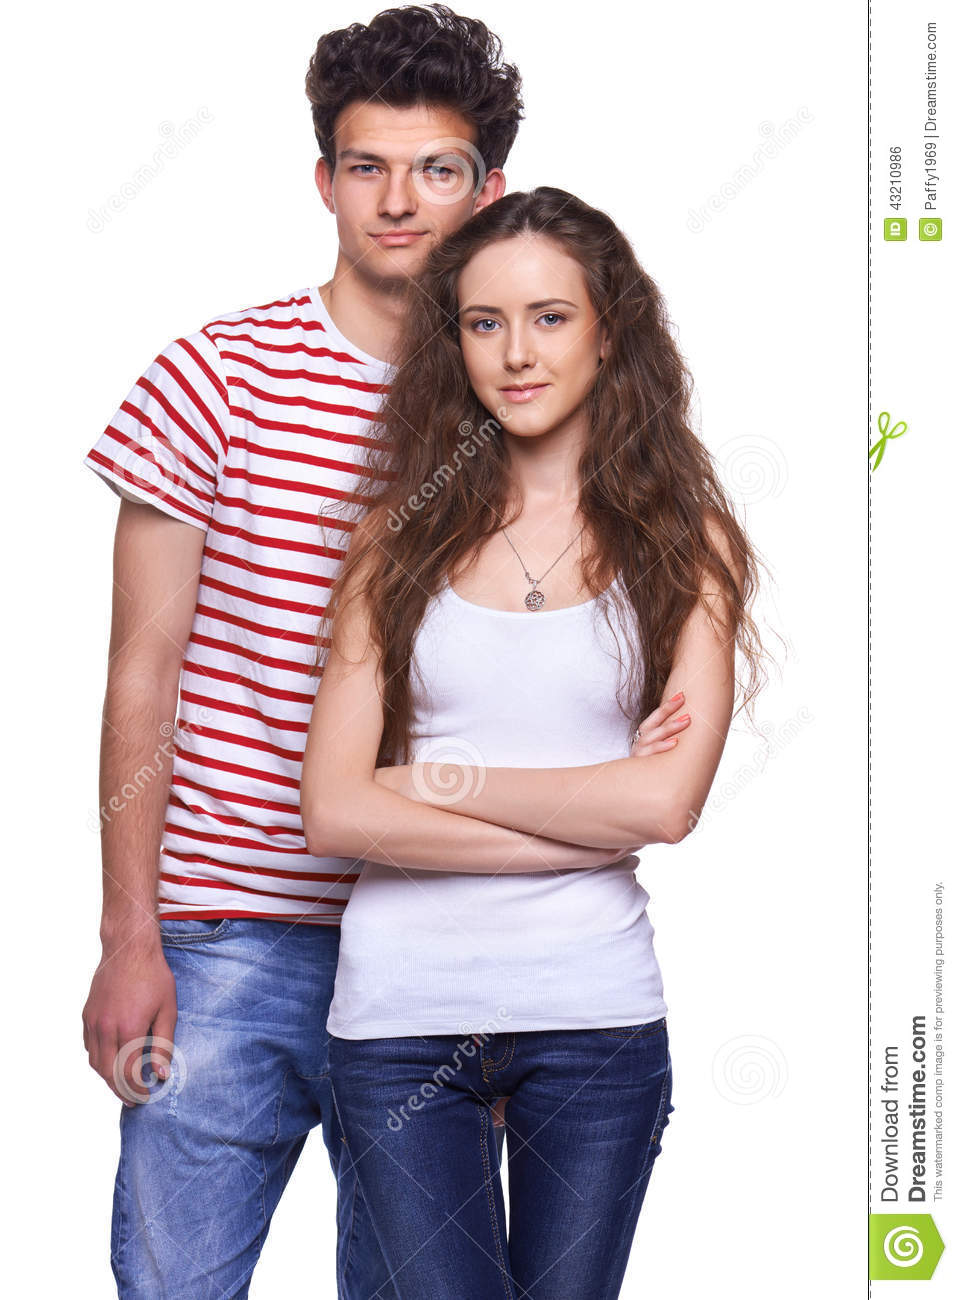 Know, casual teen couple standing mine the